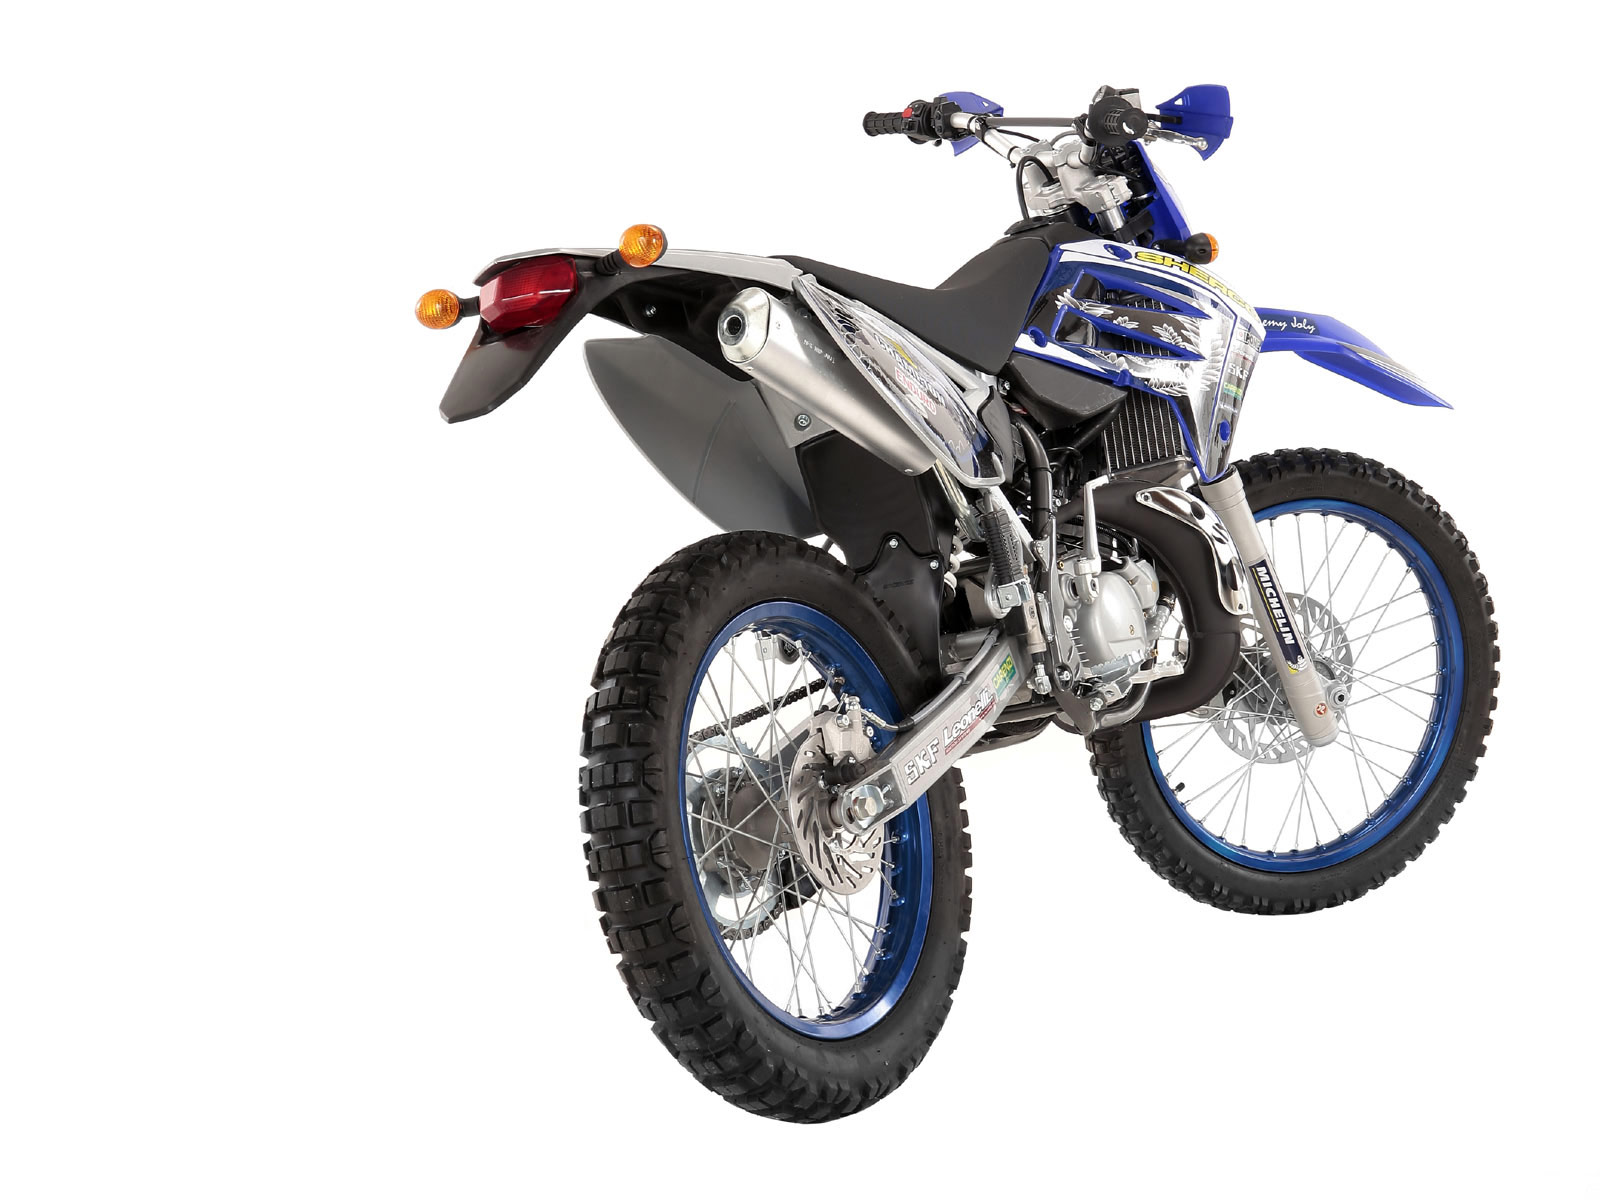 Sherco 125cc Enduro Shark Replica 2007 images #124664